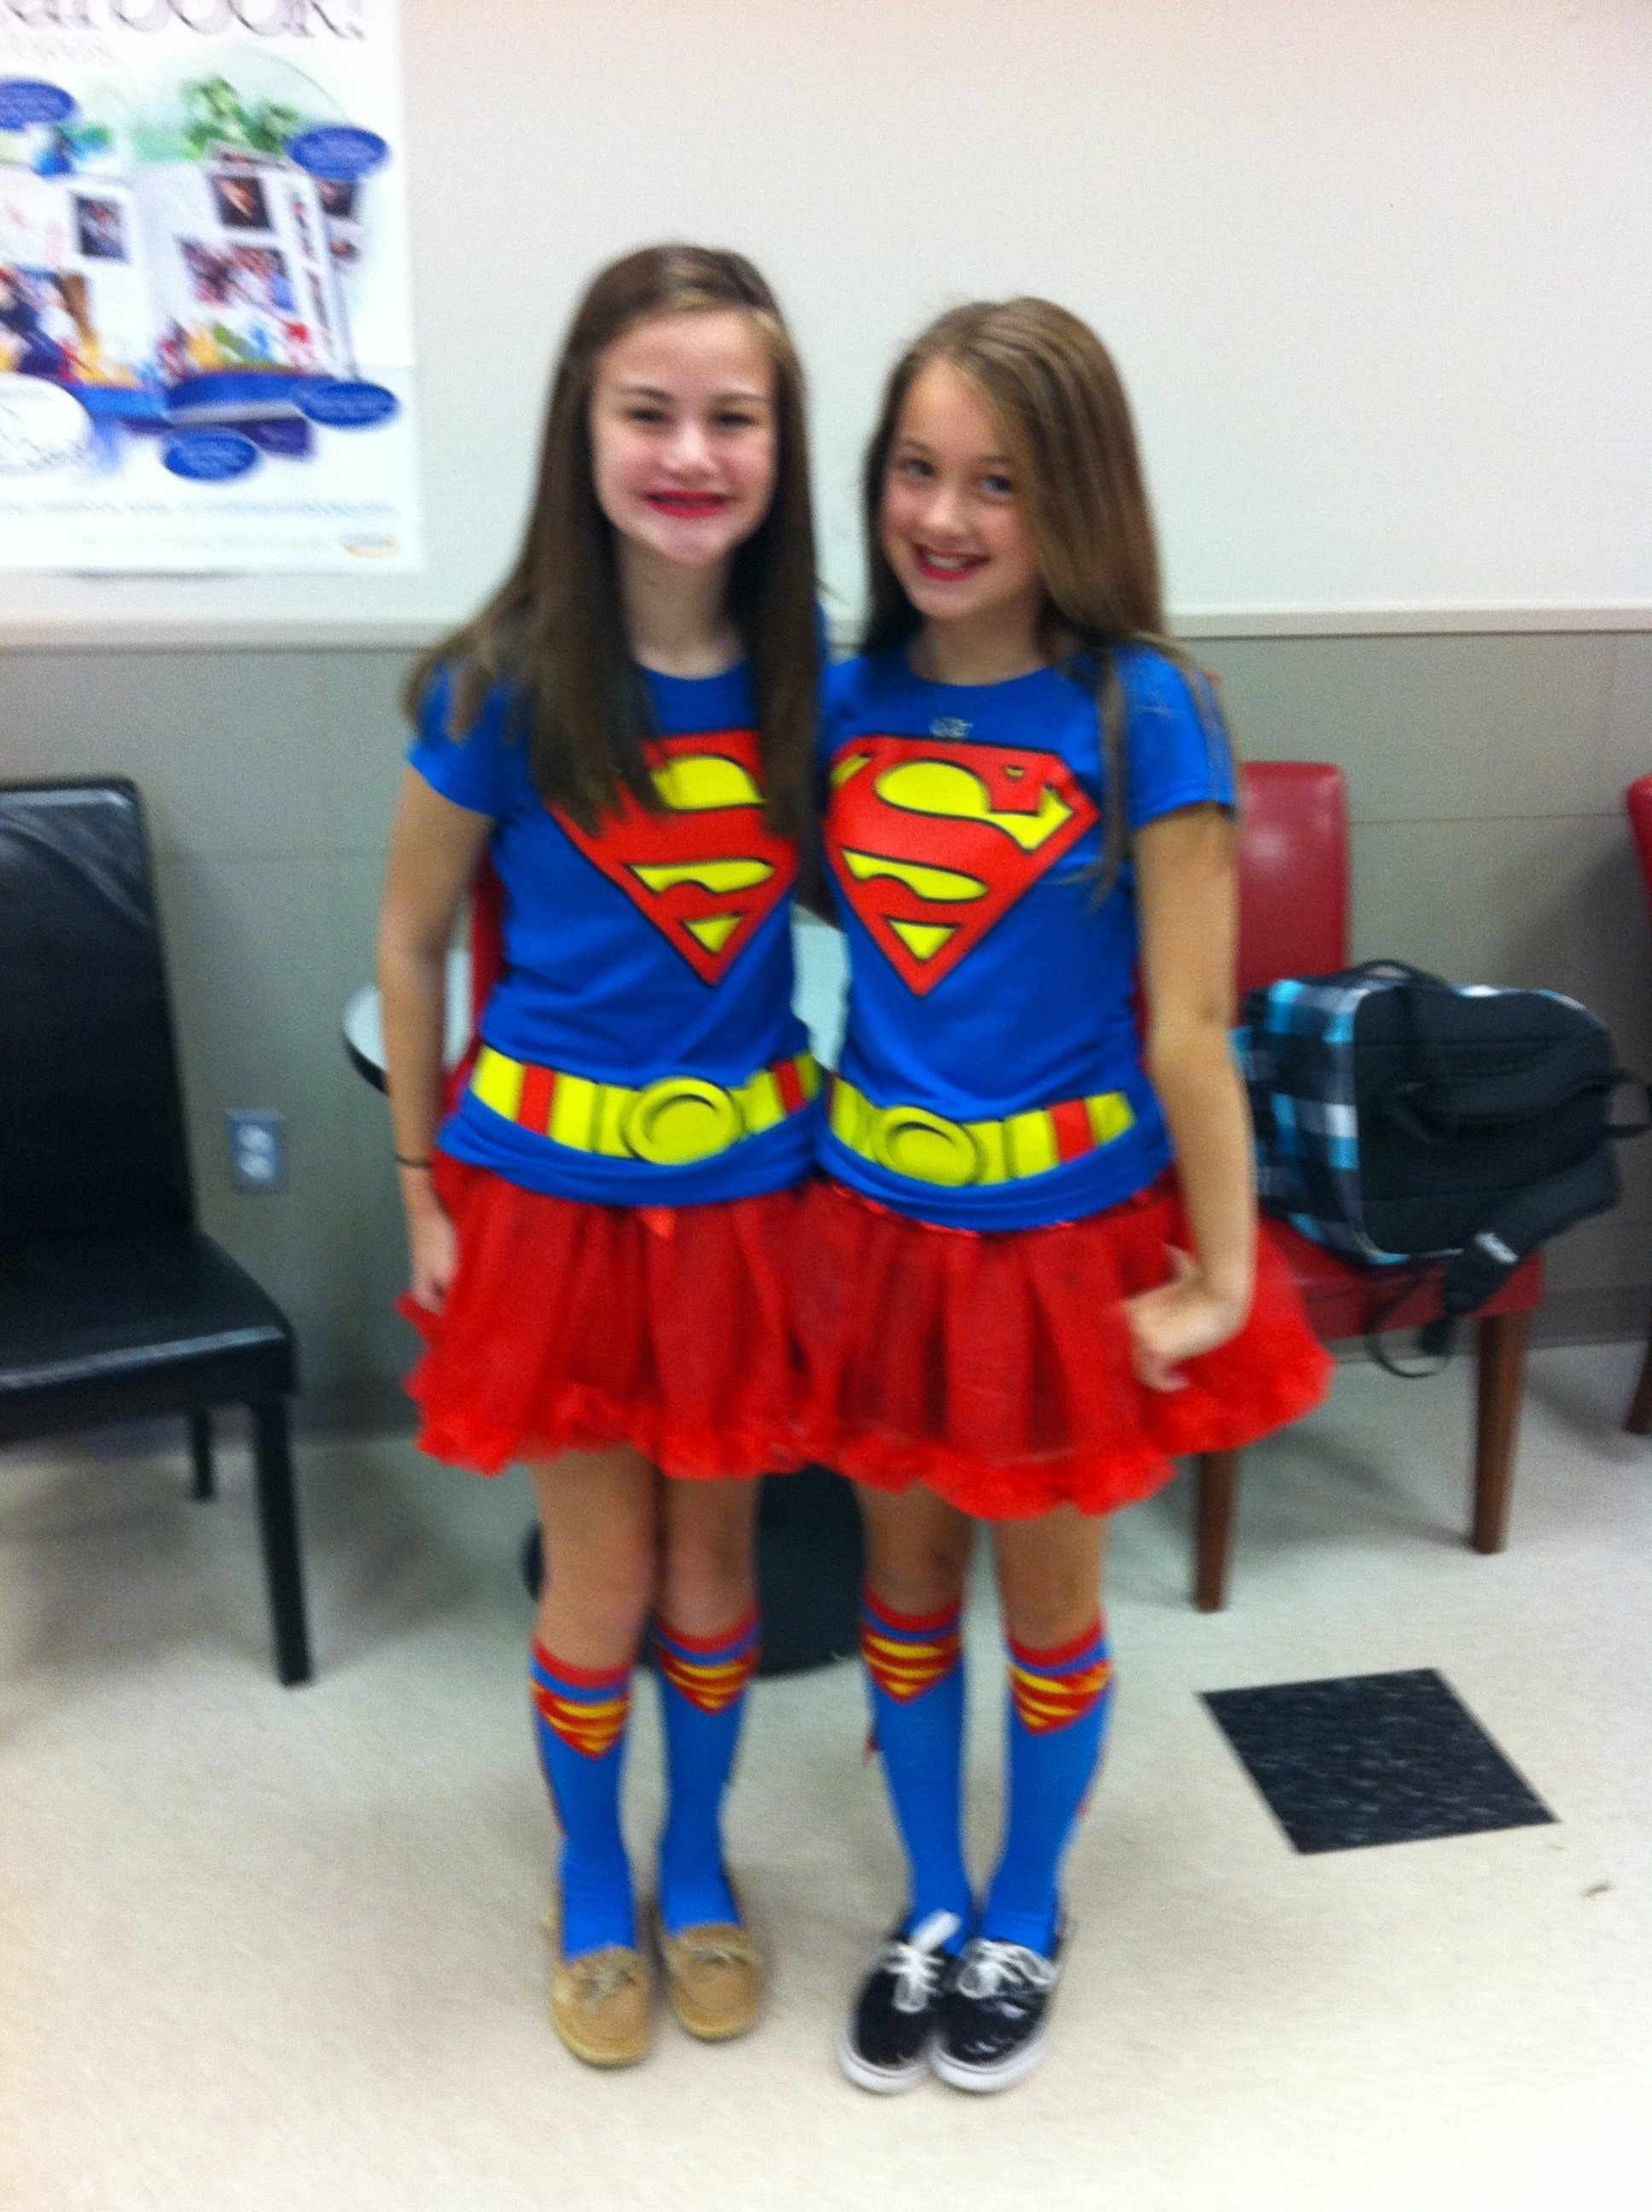 10 Wonderful Twin Day Ideas For Girls pincora mannino on band camp pinterest band camp 2021